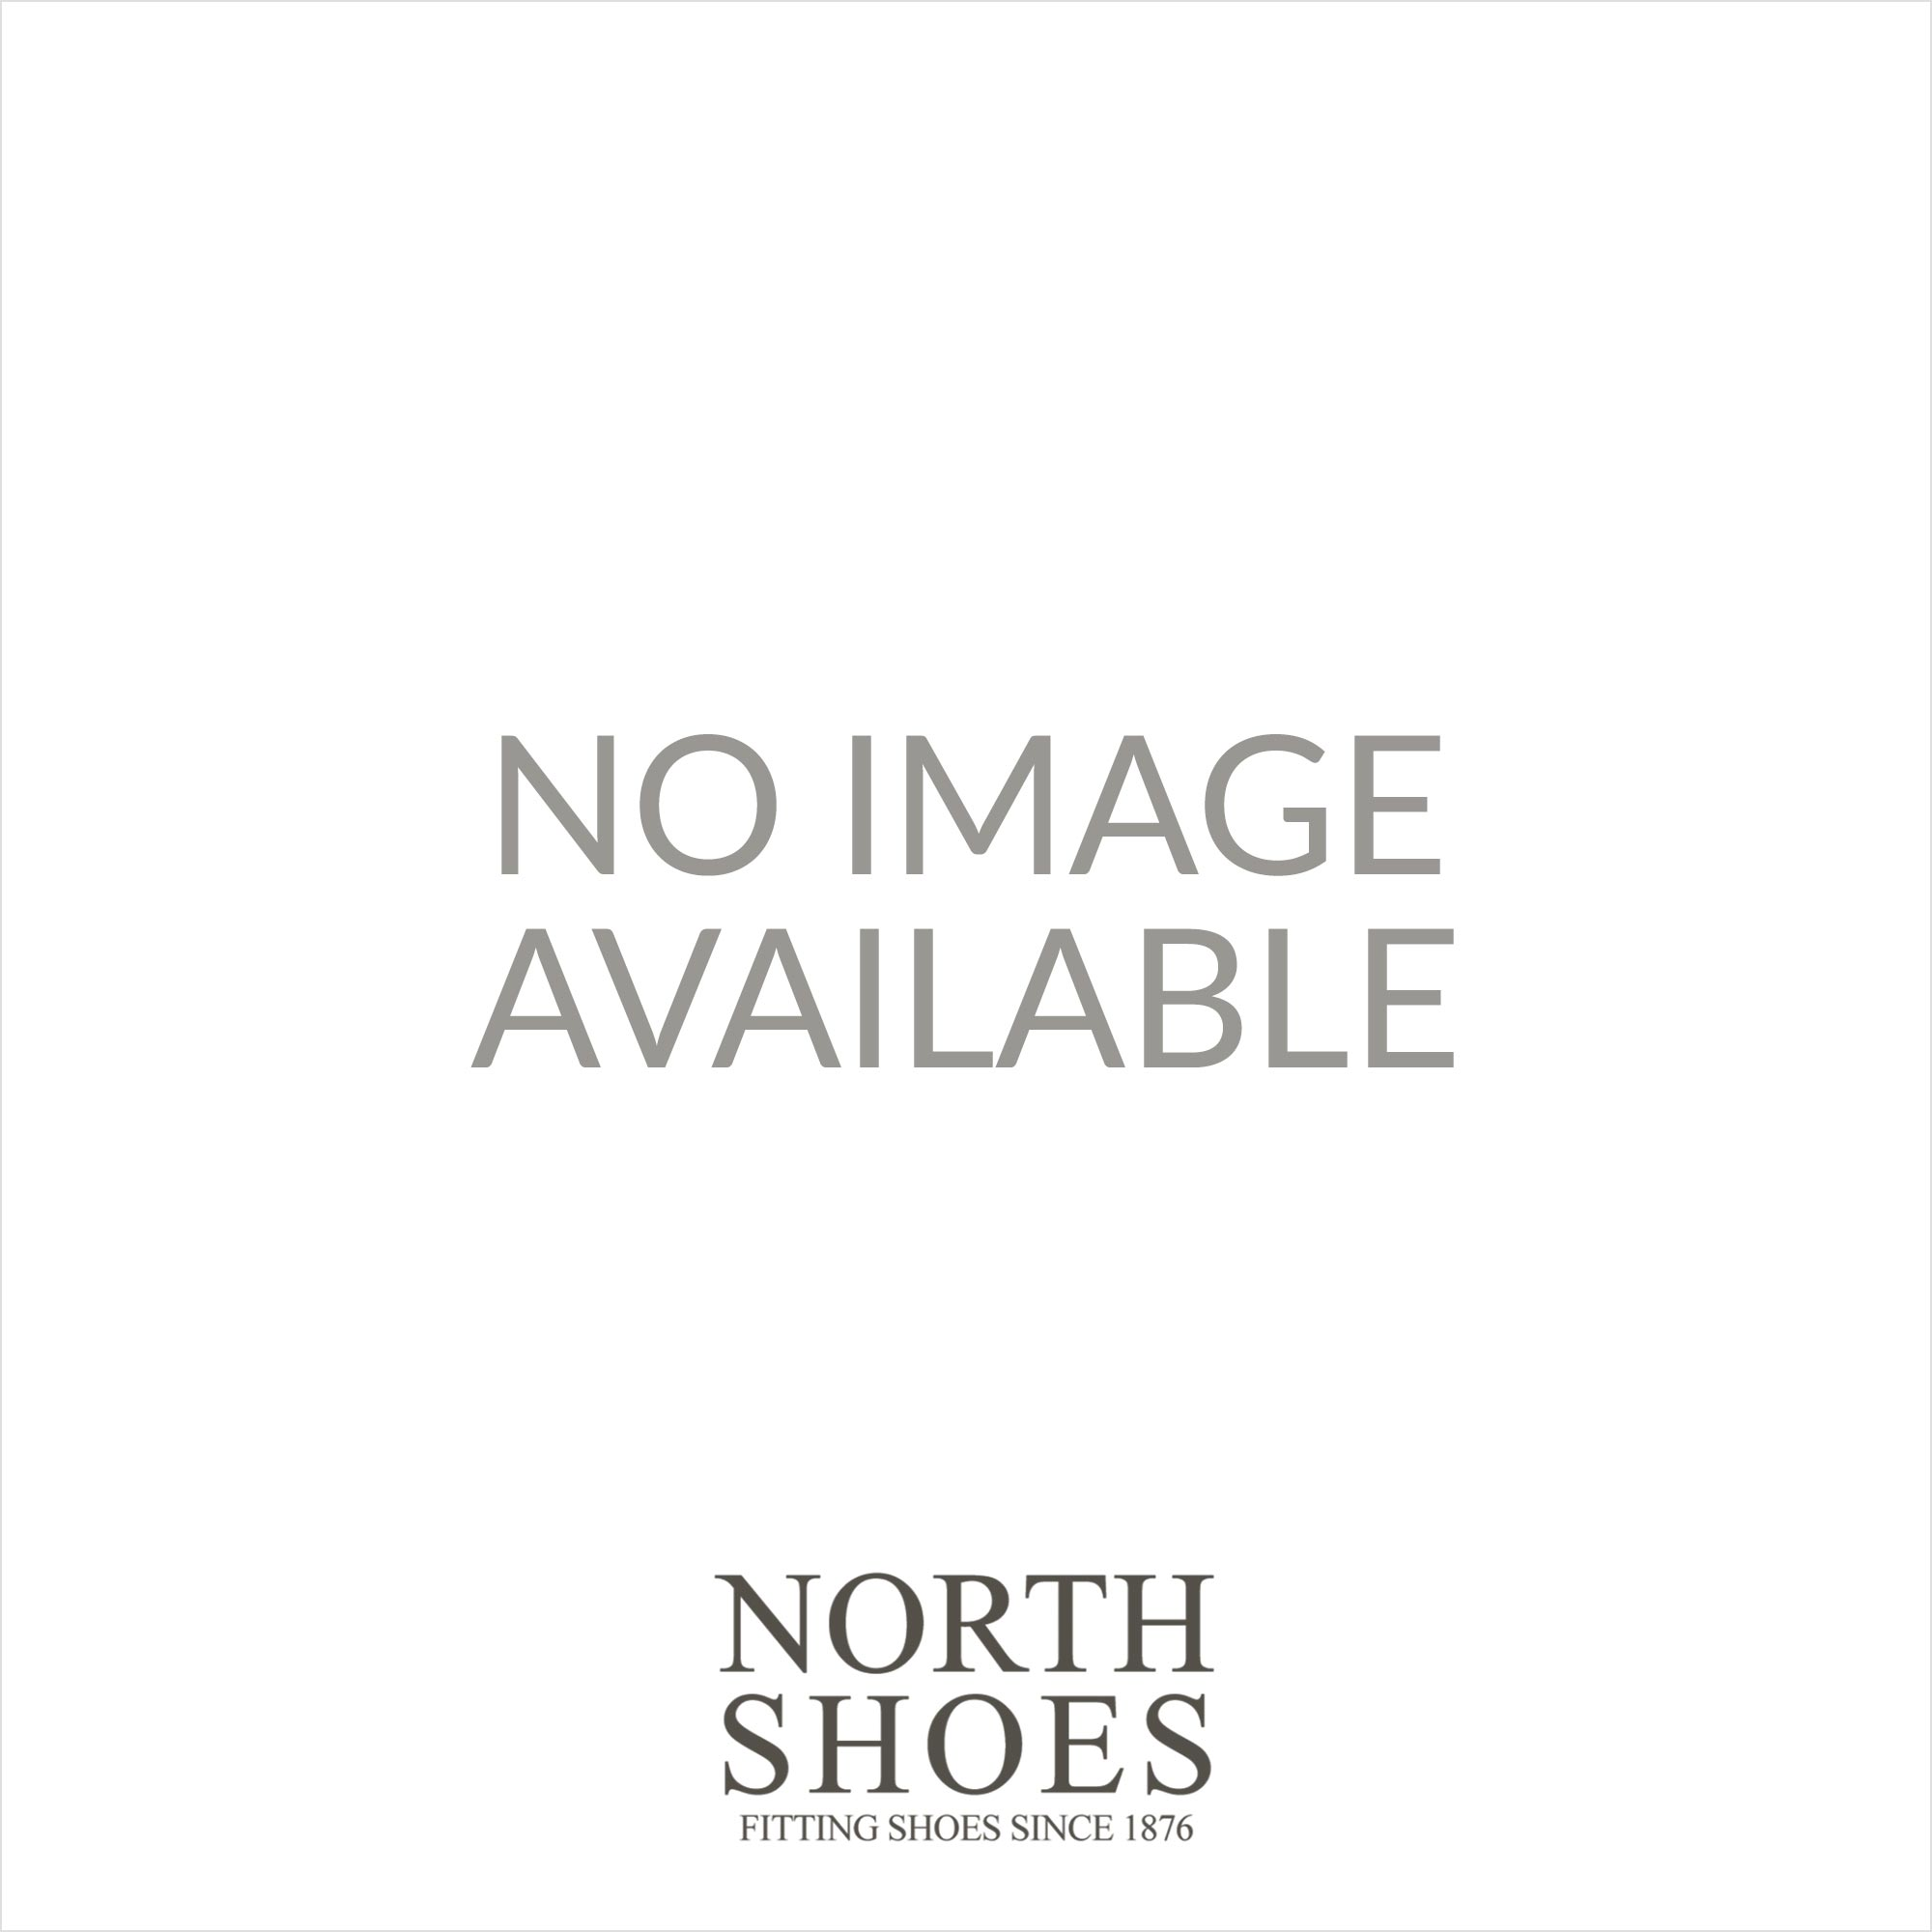 Rieker Tan Black Flat Leather Low Block Heel Ankle Boots Trouser Shoes 76961